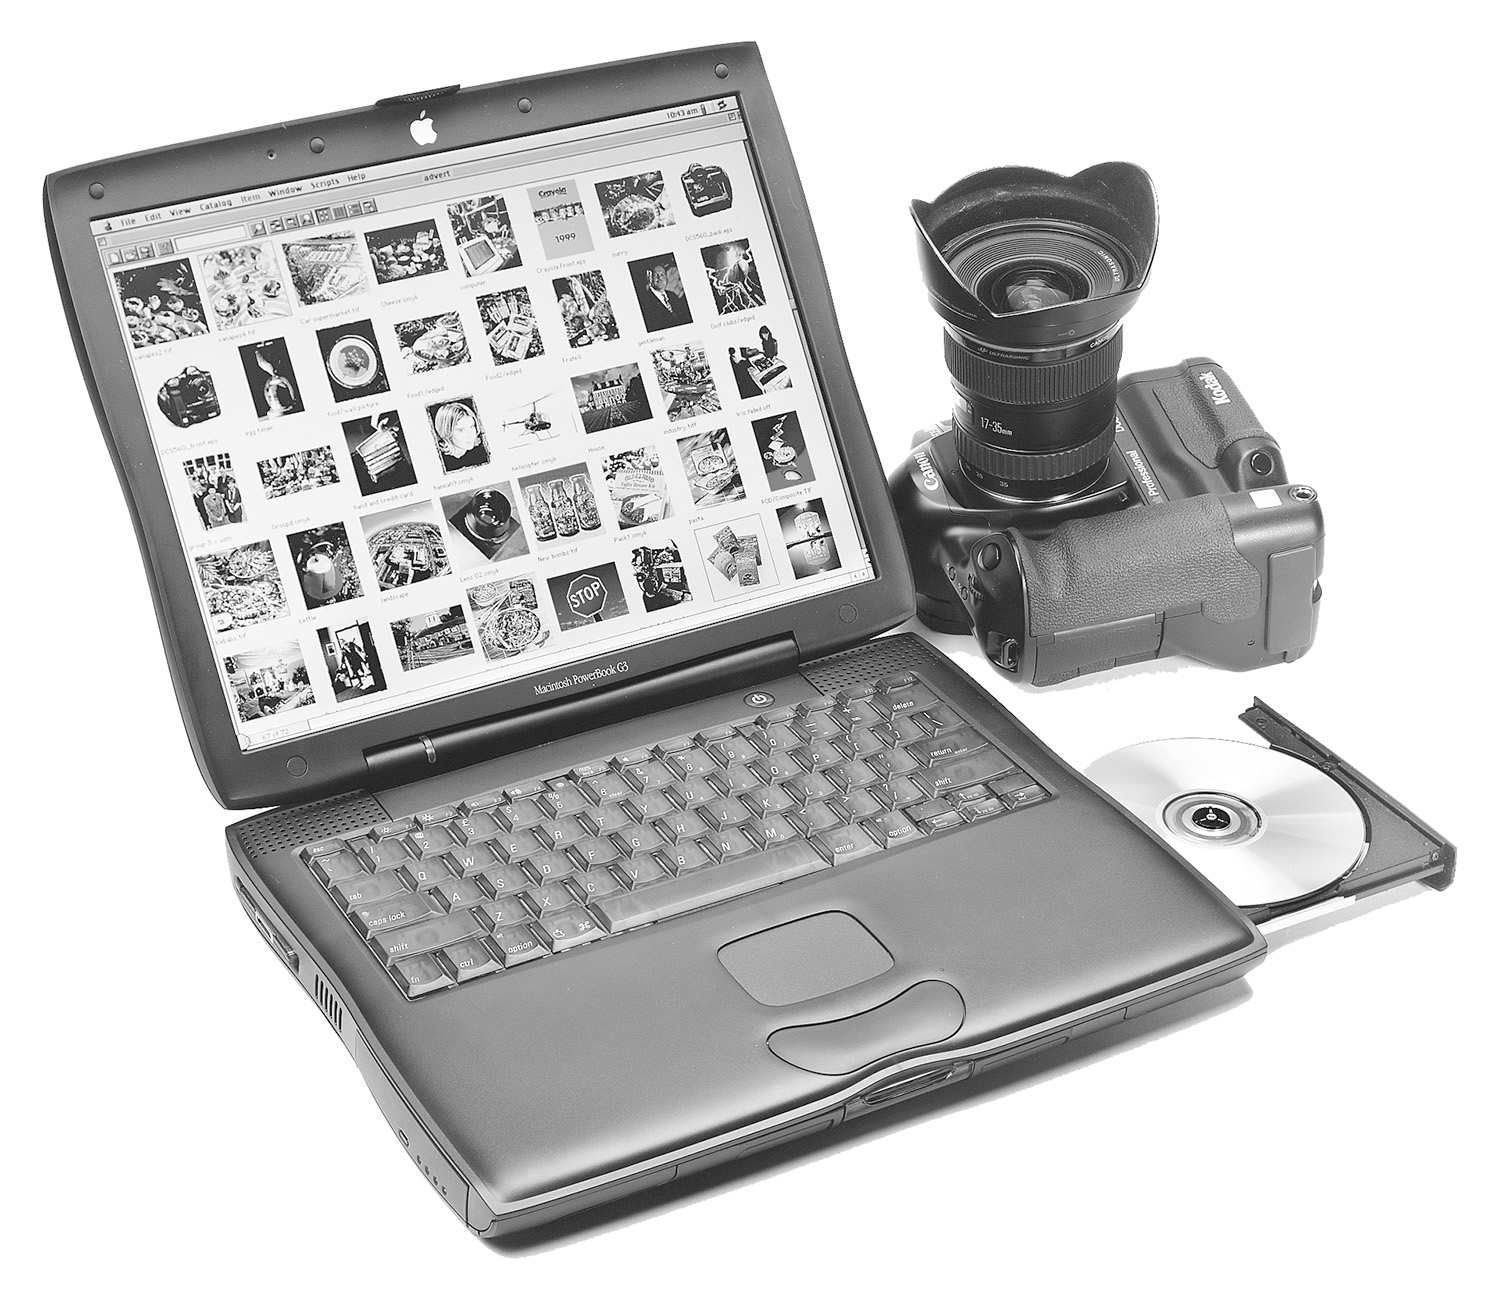 An early Macbook and Kodak DCS 560 digital camera